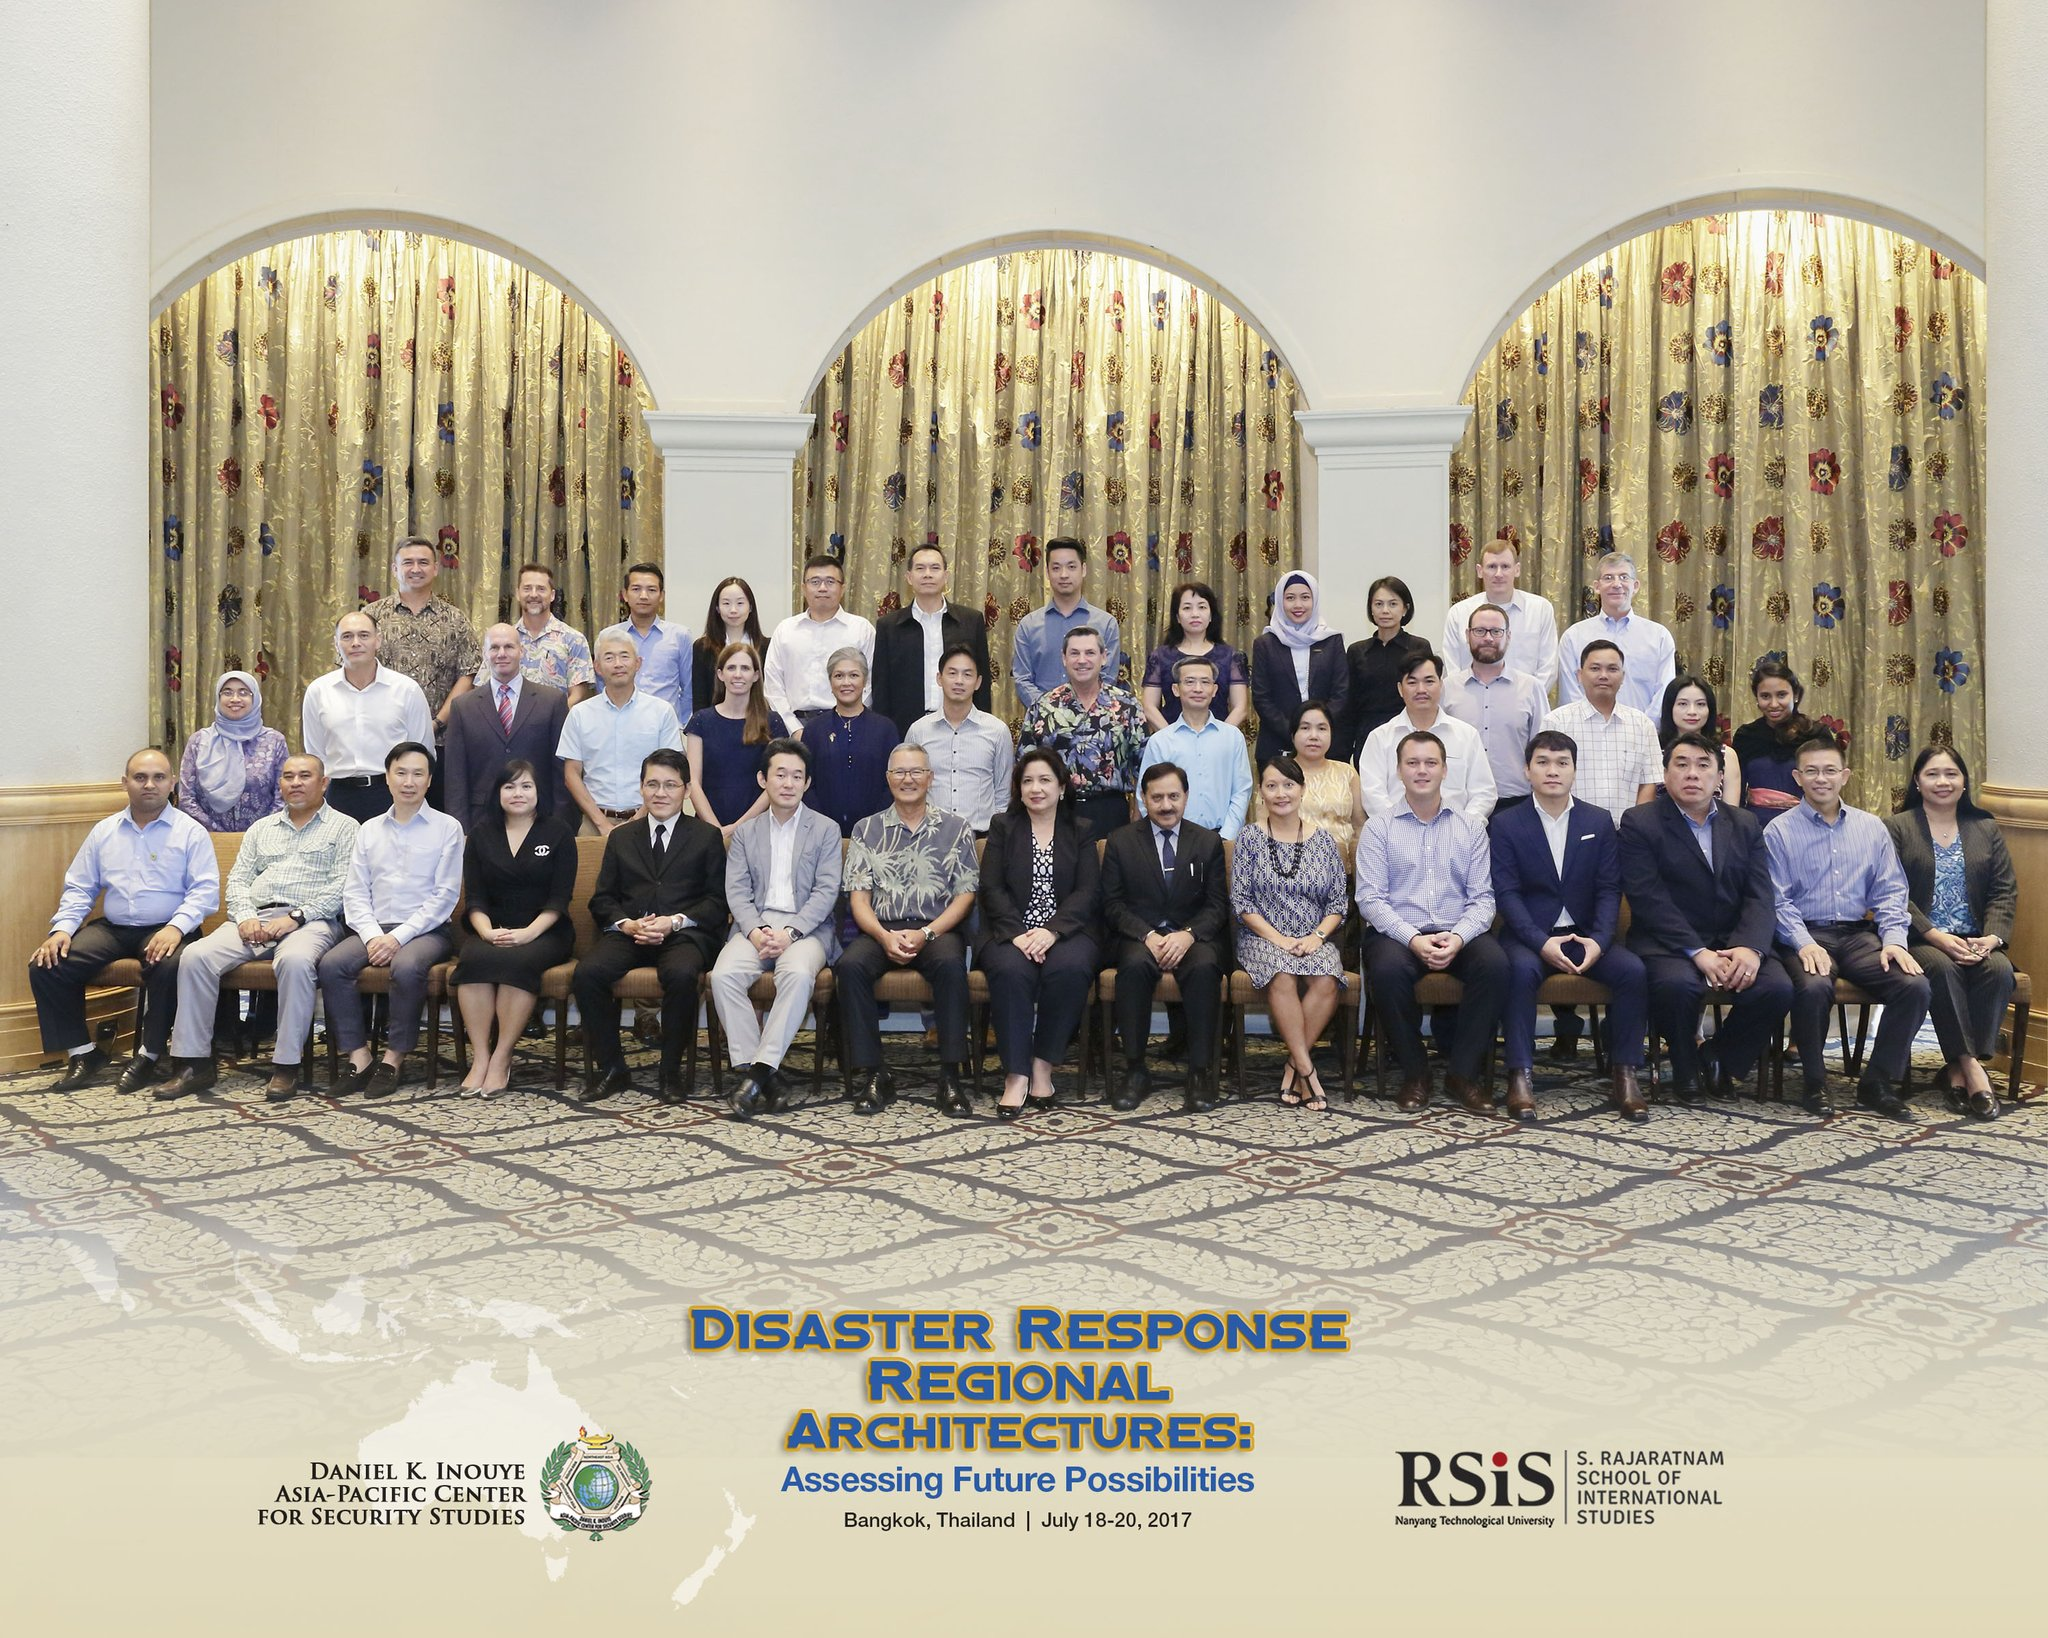 Disaster Response Workshop Group Photo